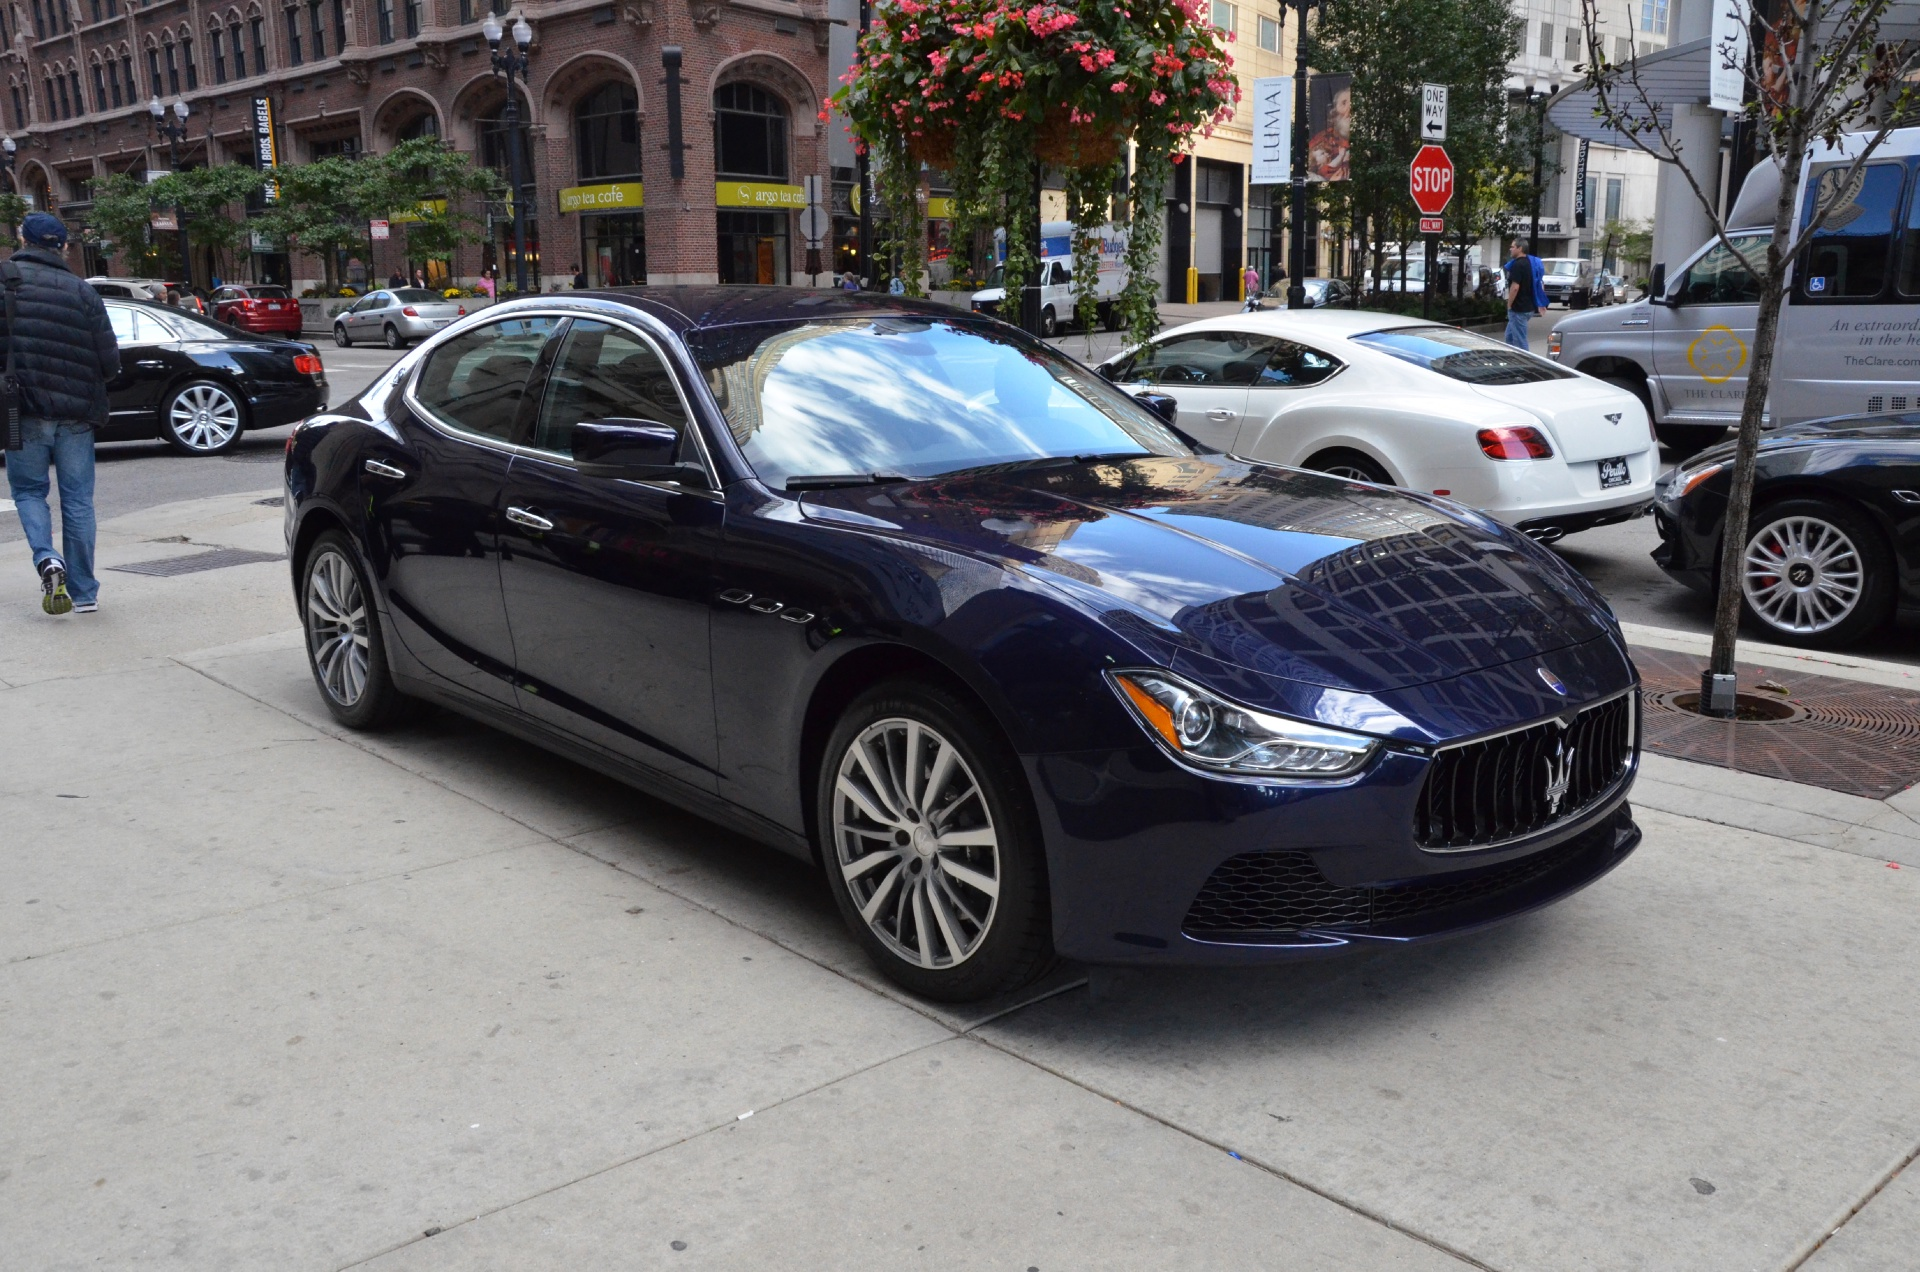 2015 maserati ghibli stock m370 for sale near chicago. Black Bedroom Furniture Sets. Home Design Ideas